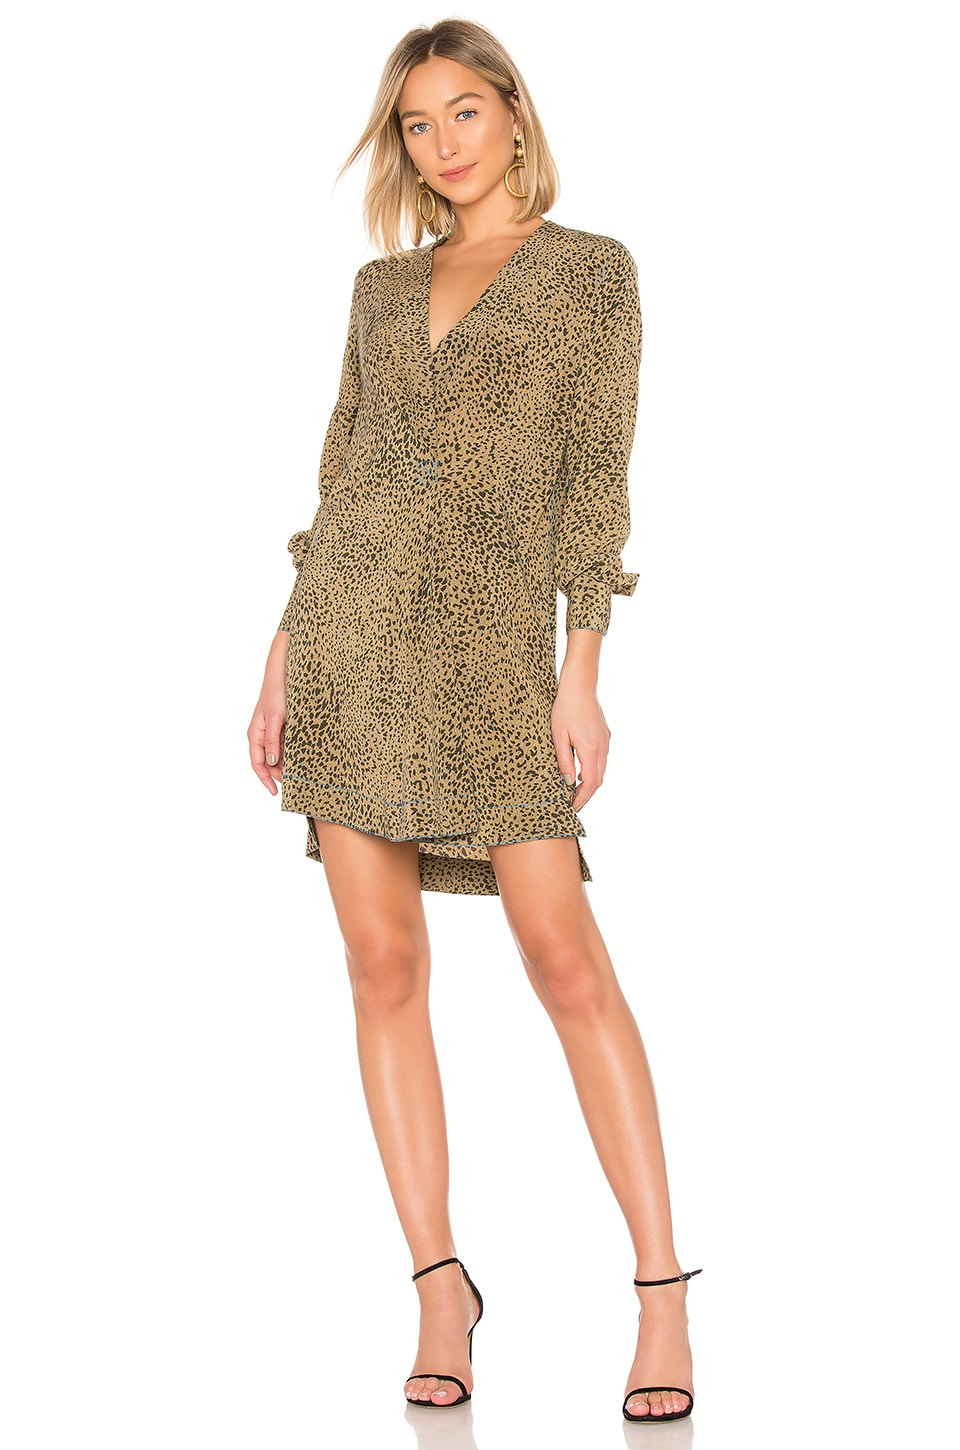 Rag & Bone Shields Dress in Olive Multi